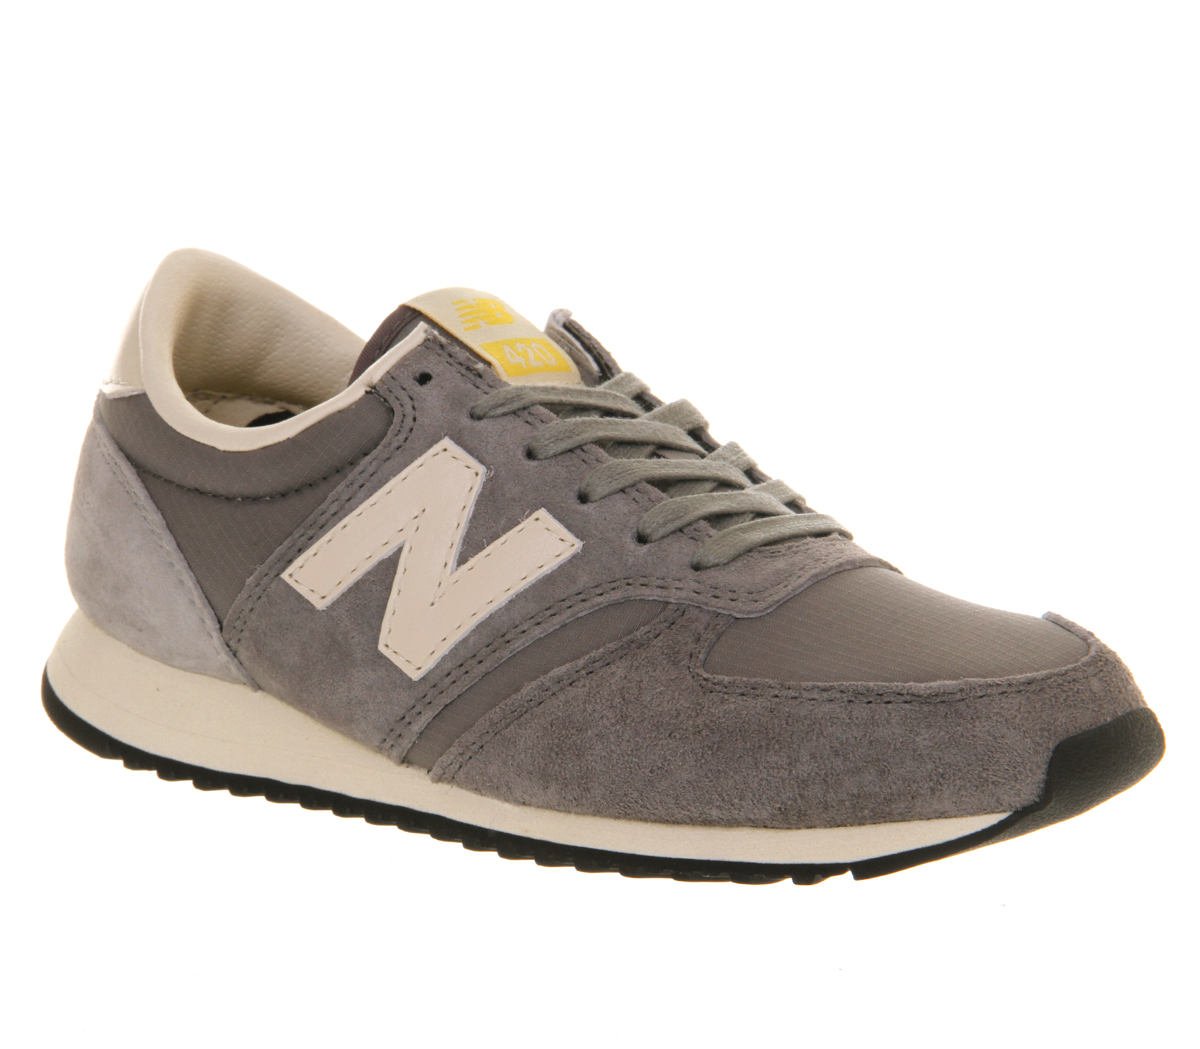 Orange And Gray New Balance Shoes